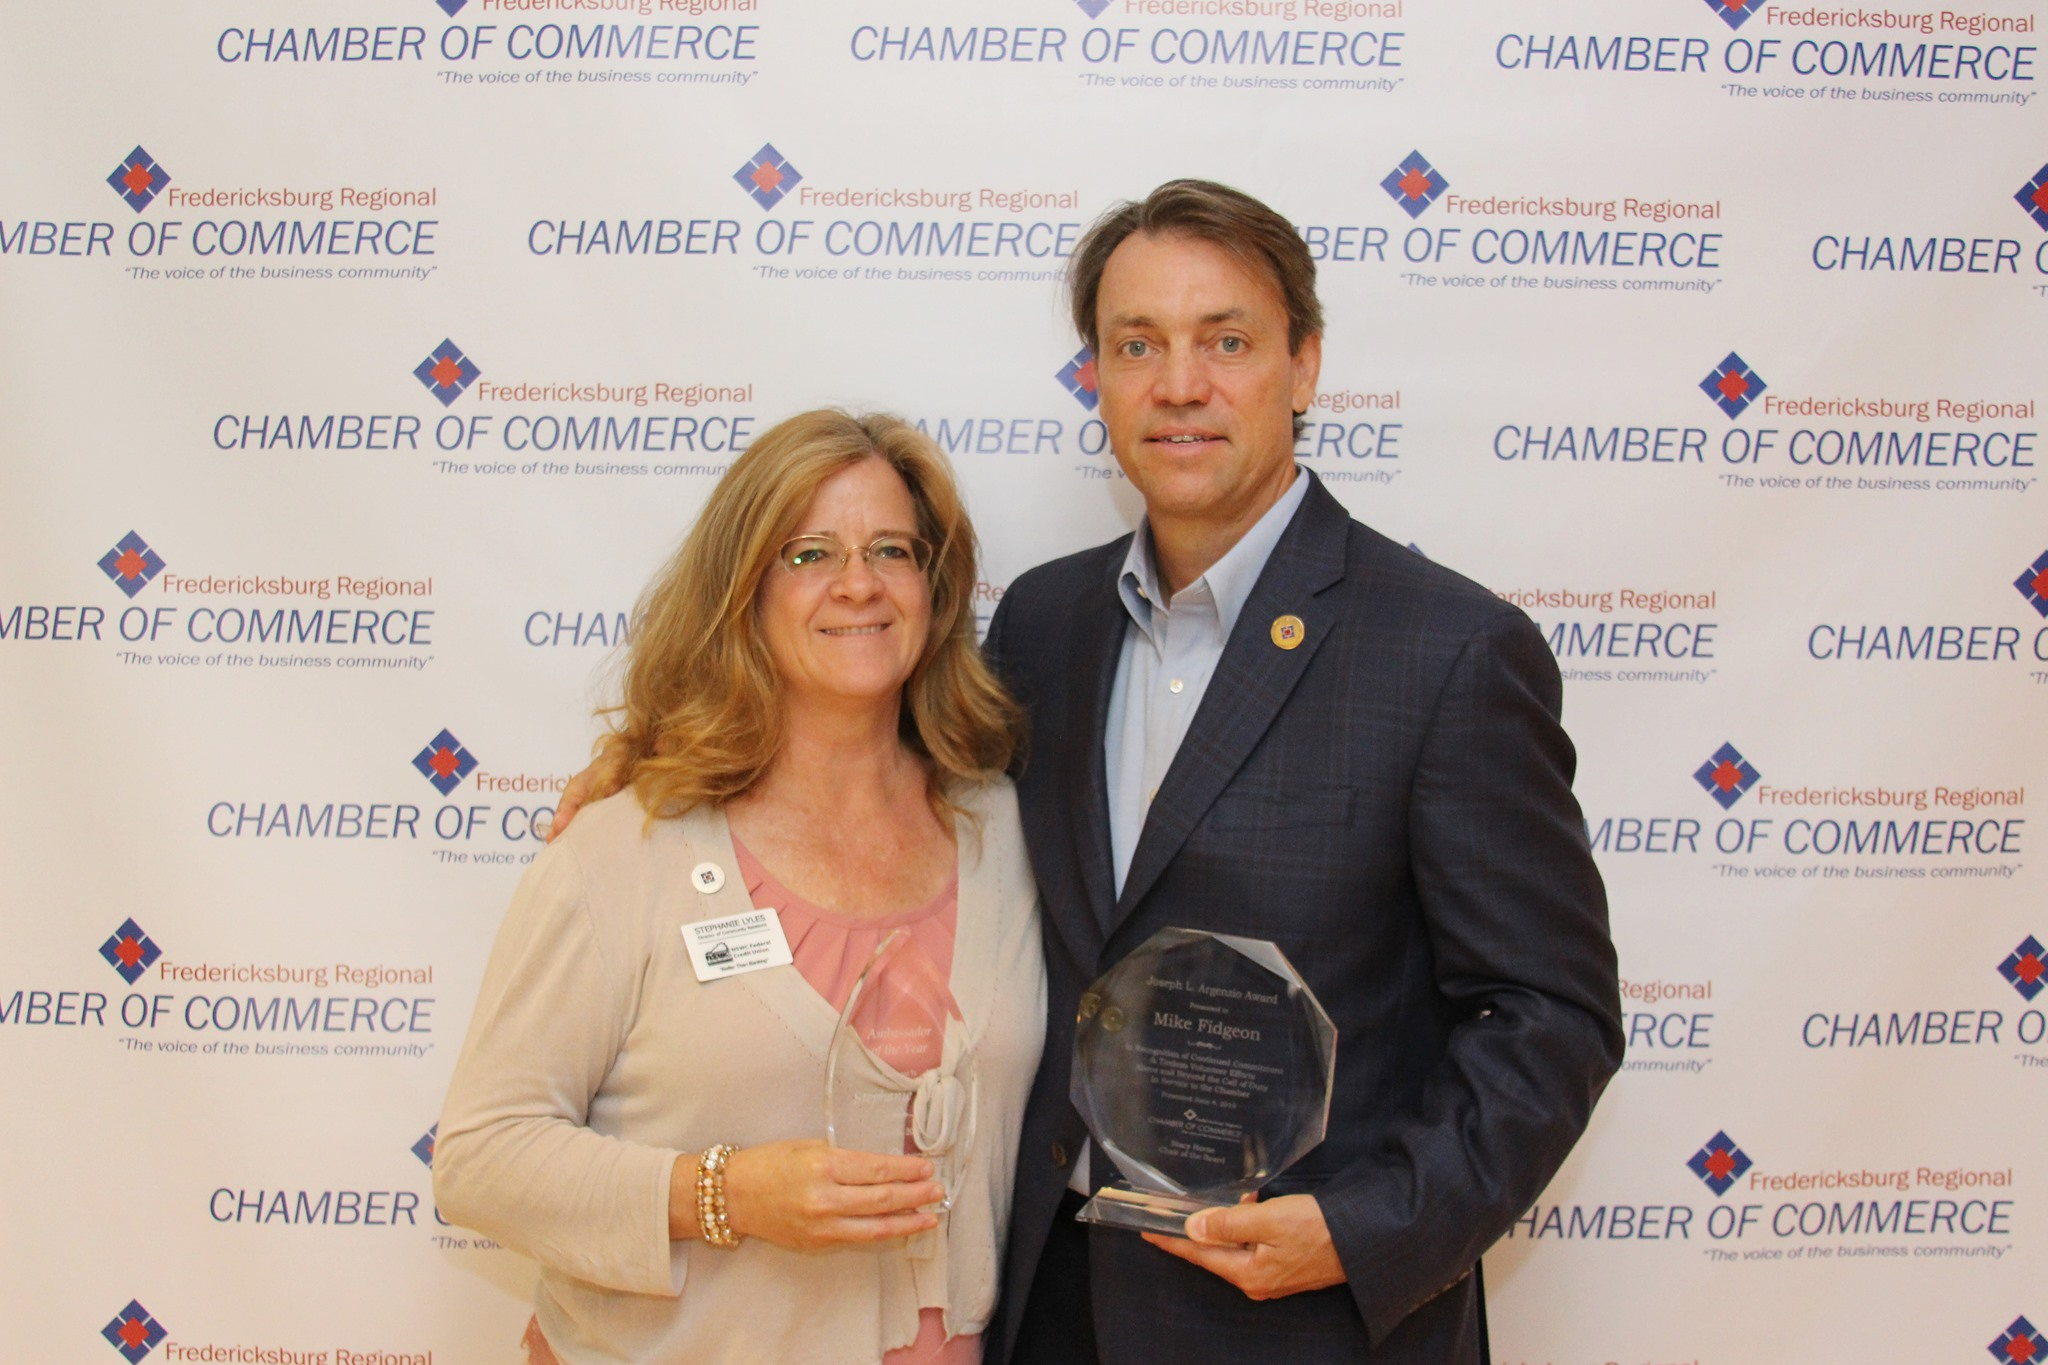 Chamber of Commerce gives out two awards